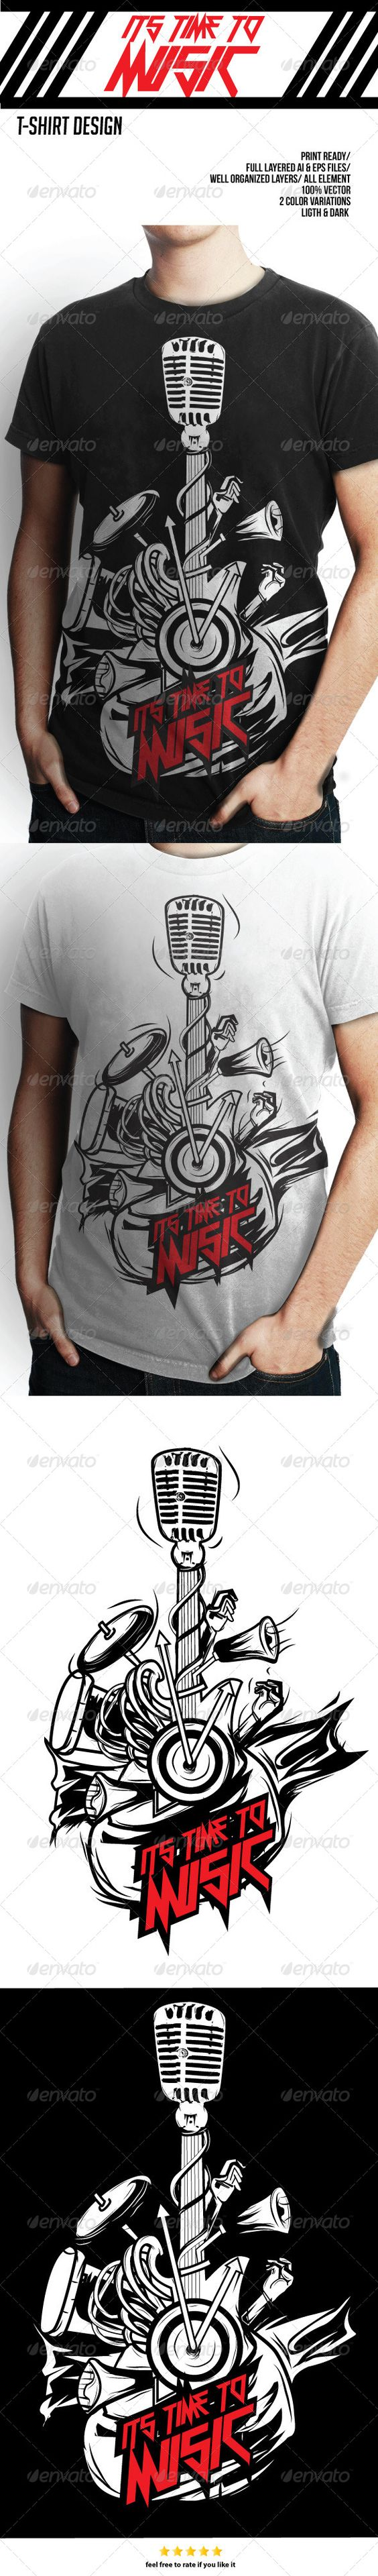 T shirt design jquery - T Shirt Design Music Template Vector Eps Ai Download Here Http